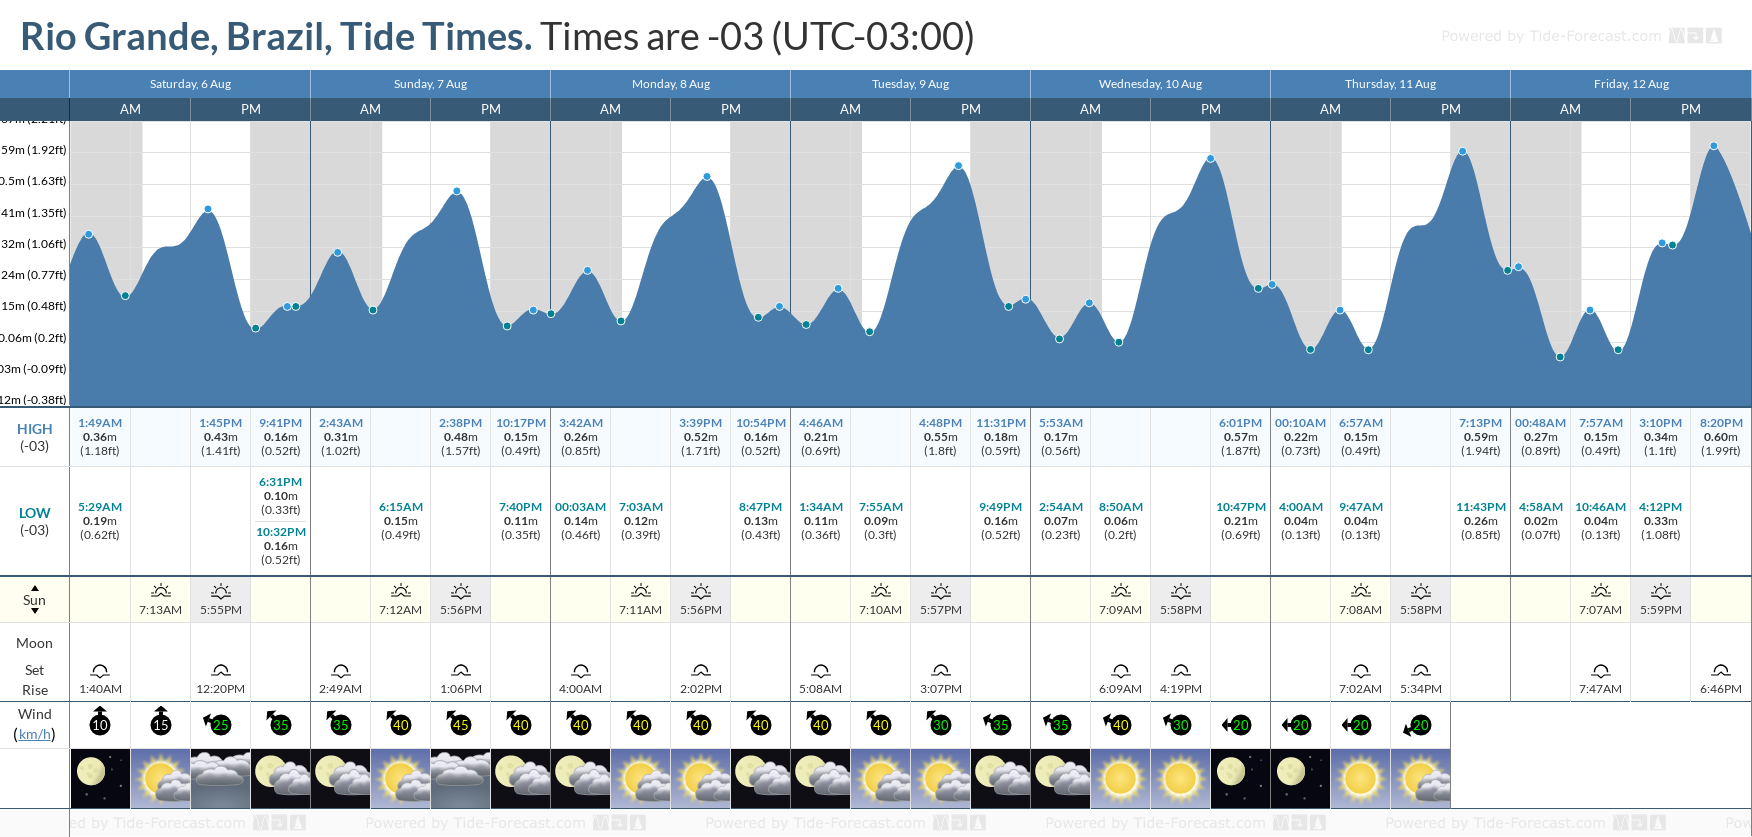 Rio Grande, Brazil Tide Chart including high and low tide tide times for the next 7 days